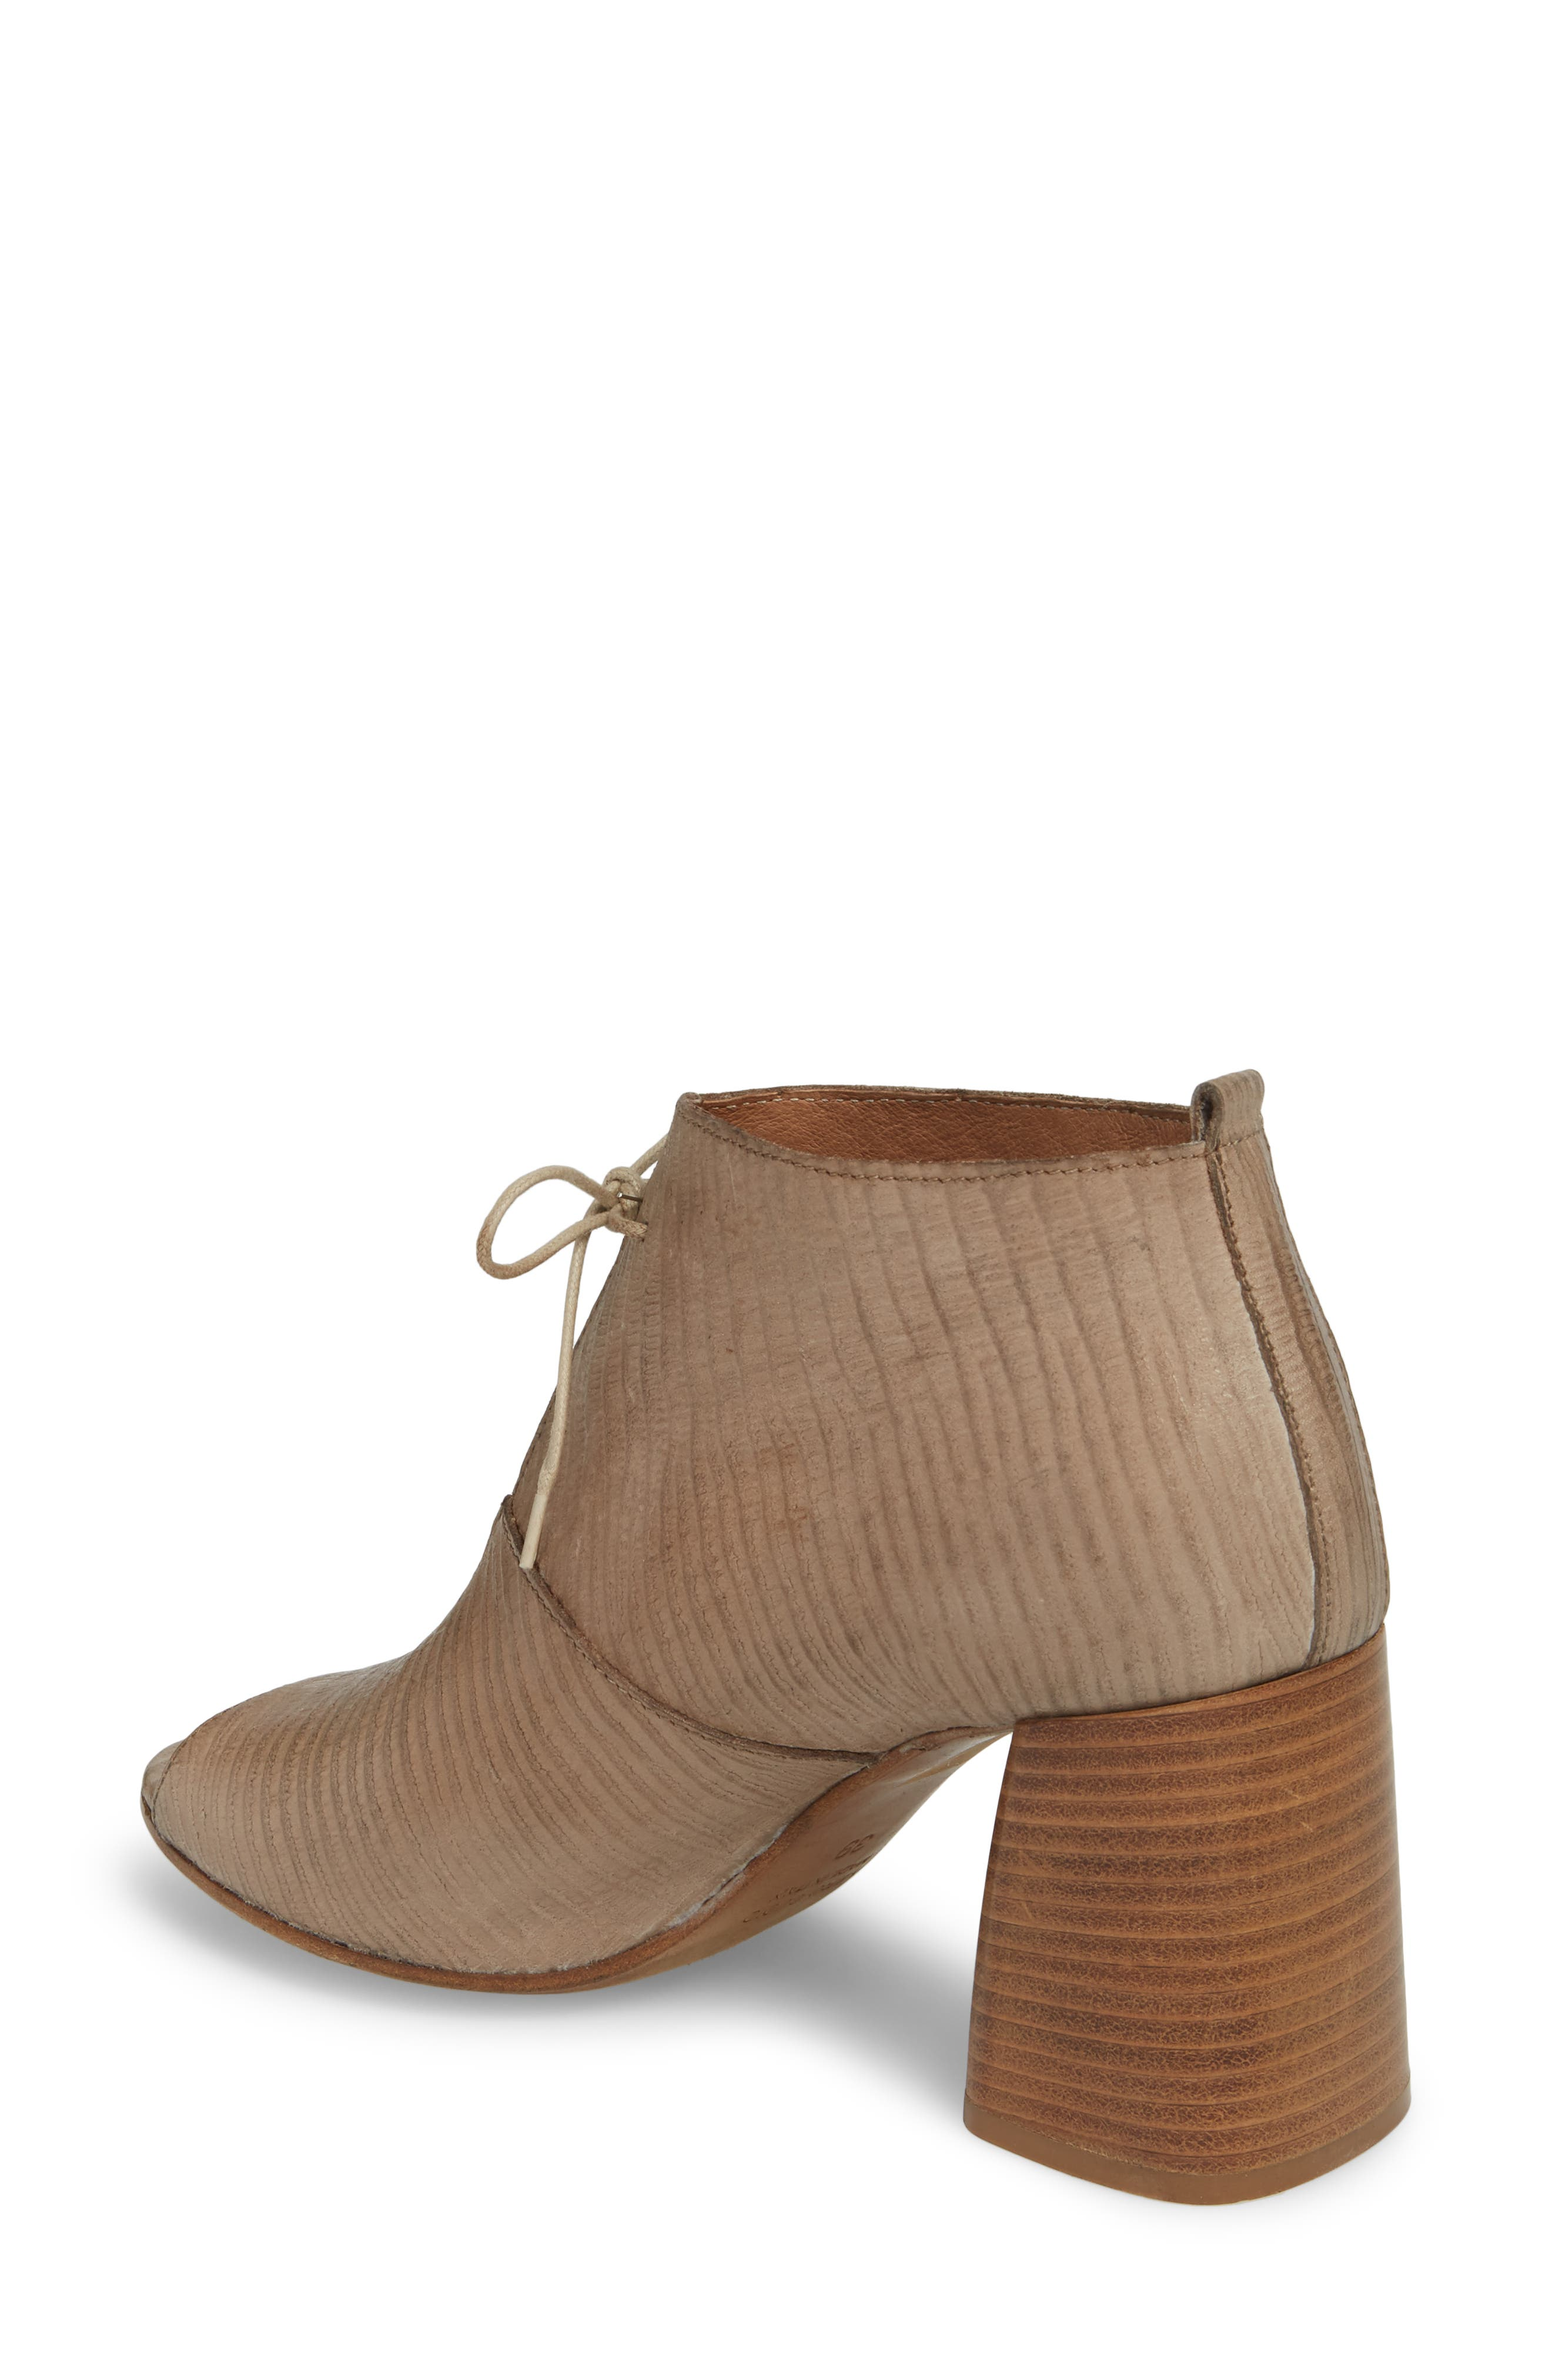 Lacey1 Bootie,                             Alternate thumbnail 2, color,                             Taupe Leather